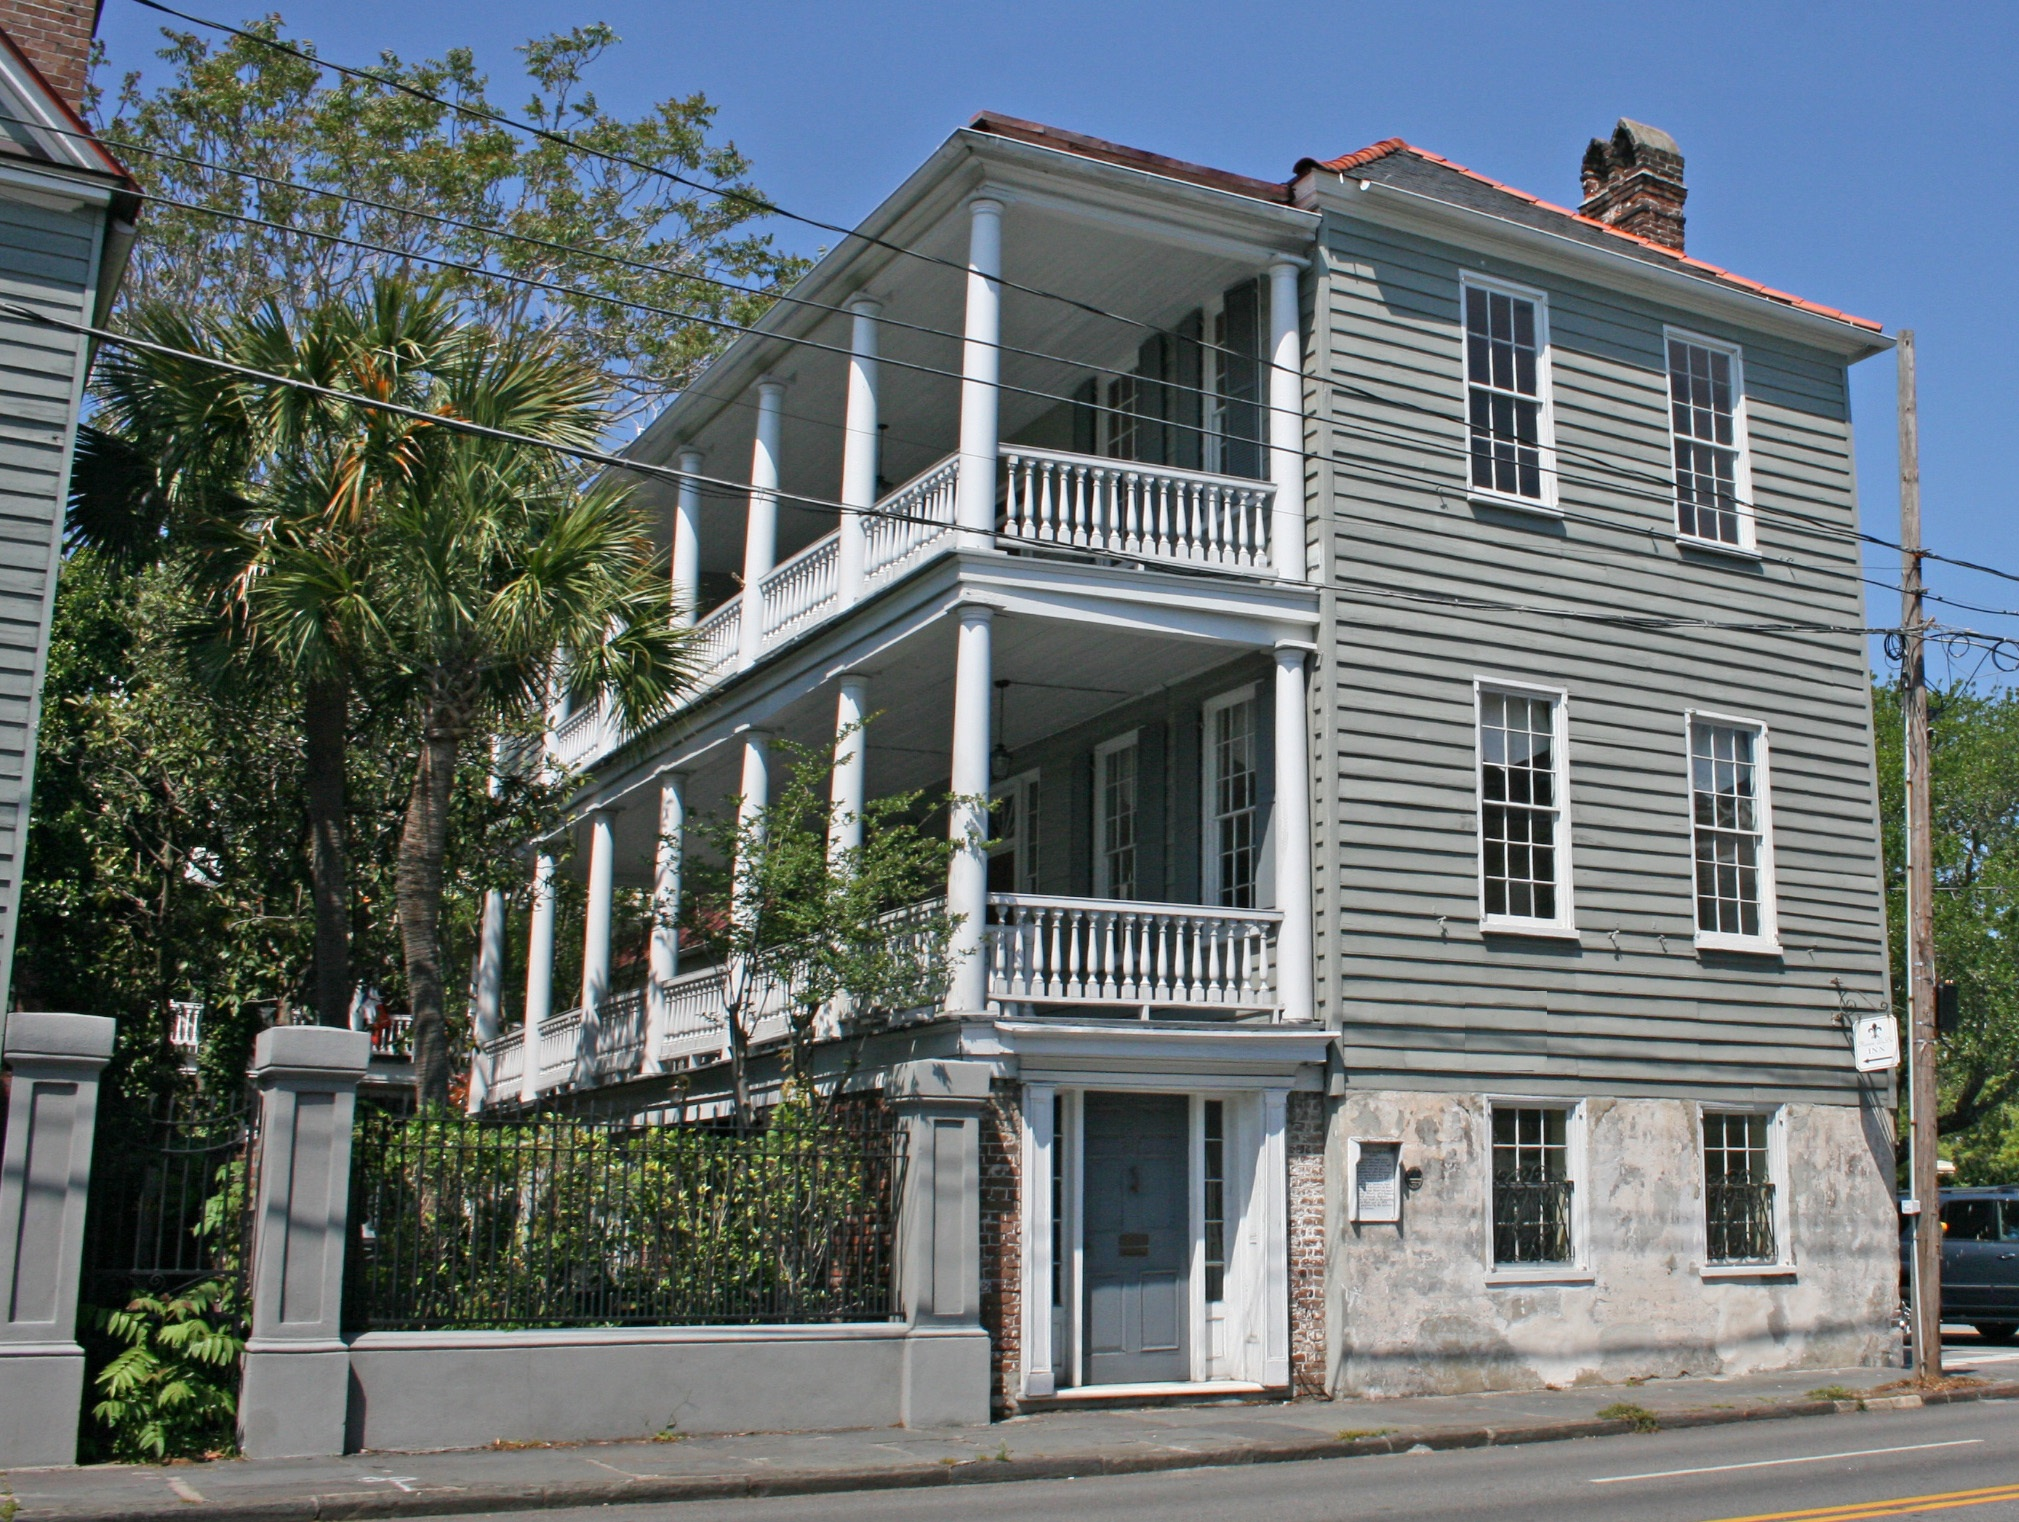 Charleston's 317 East Bay Street is a complex of three Charleston single houses and two carriage houses comprising almost 10,000 square feet.